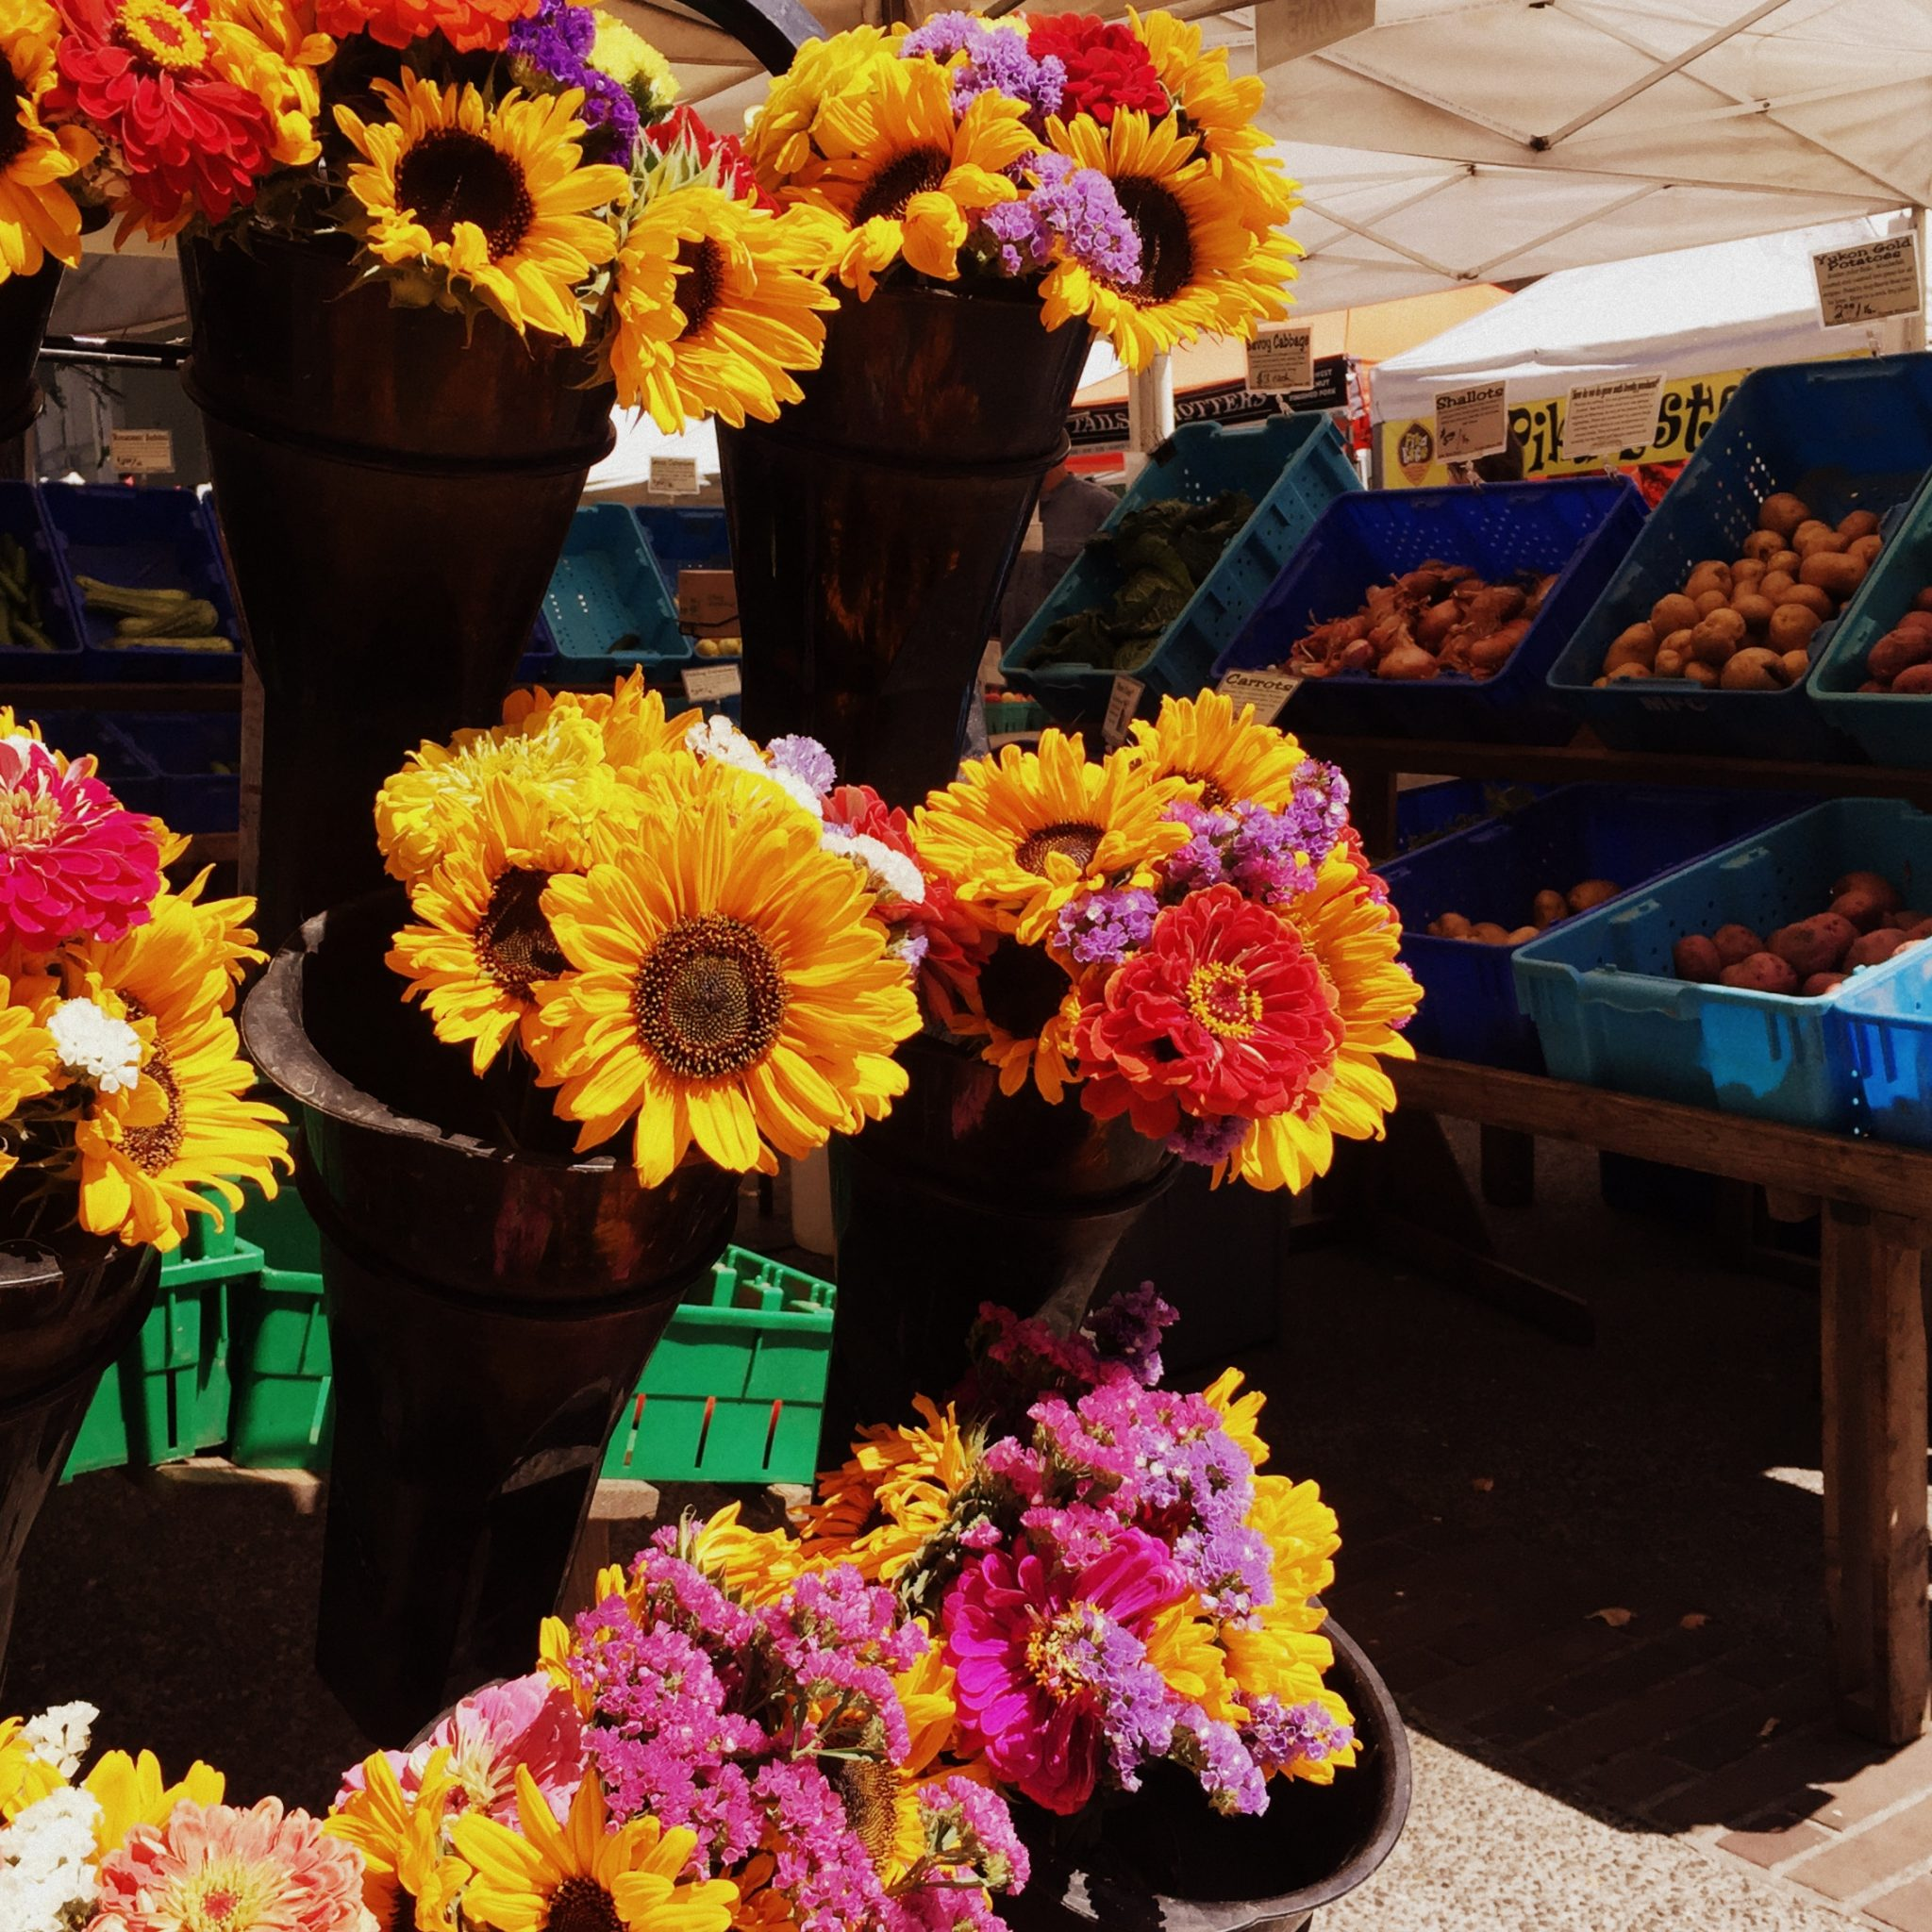 The excellent weekly Portland Farmers Market is bound to keep you occupied all morning.